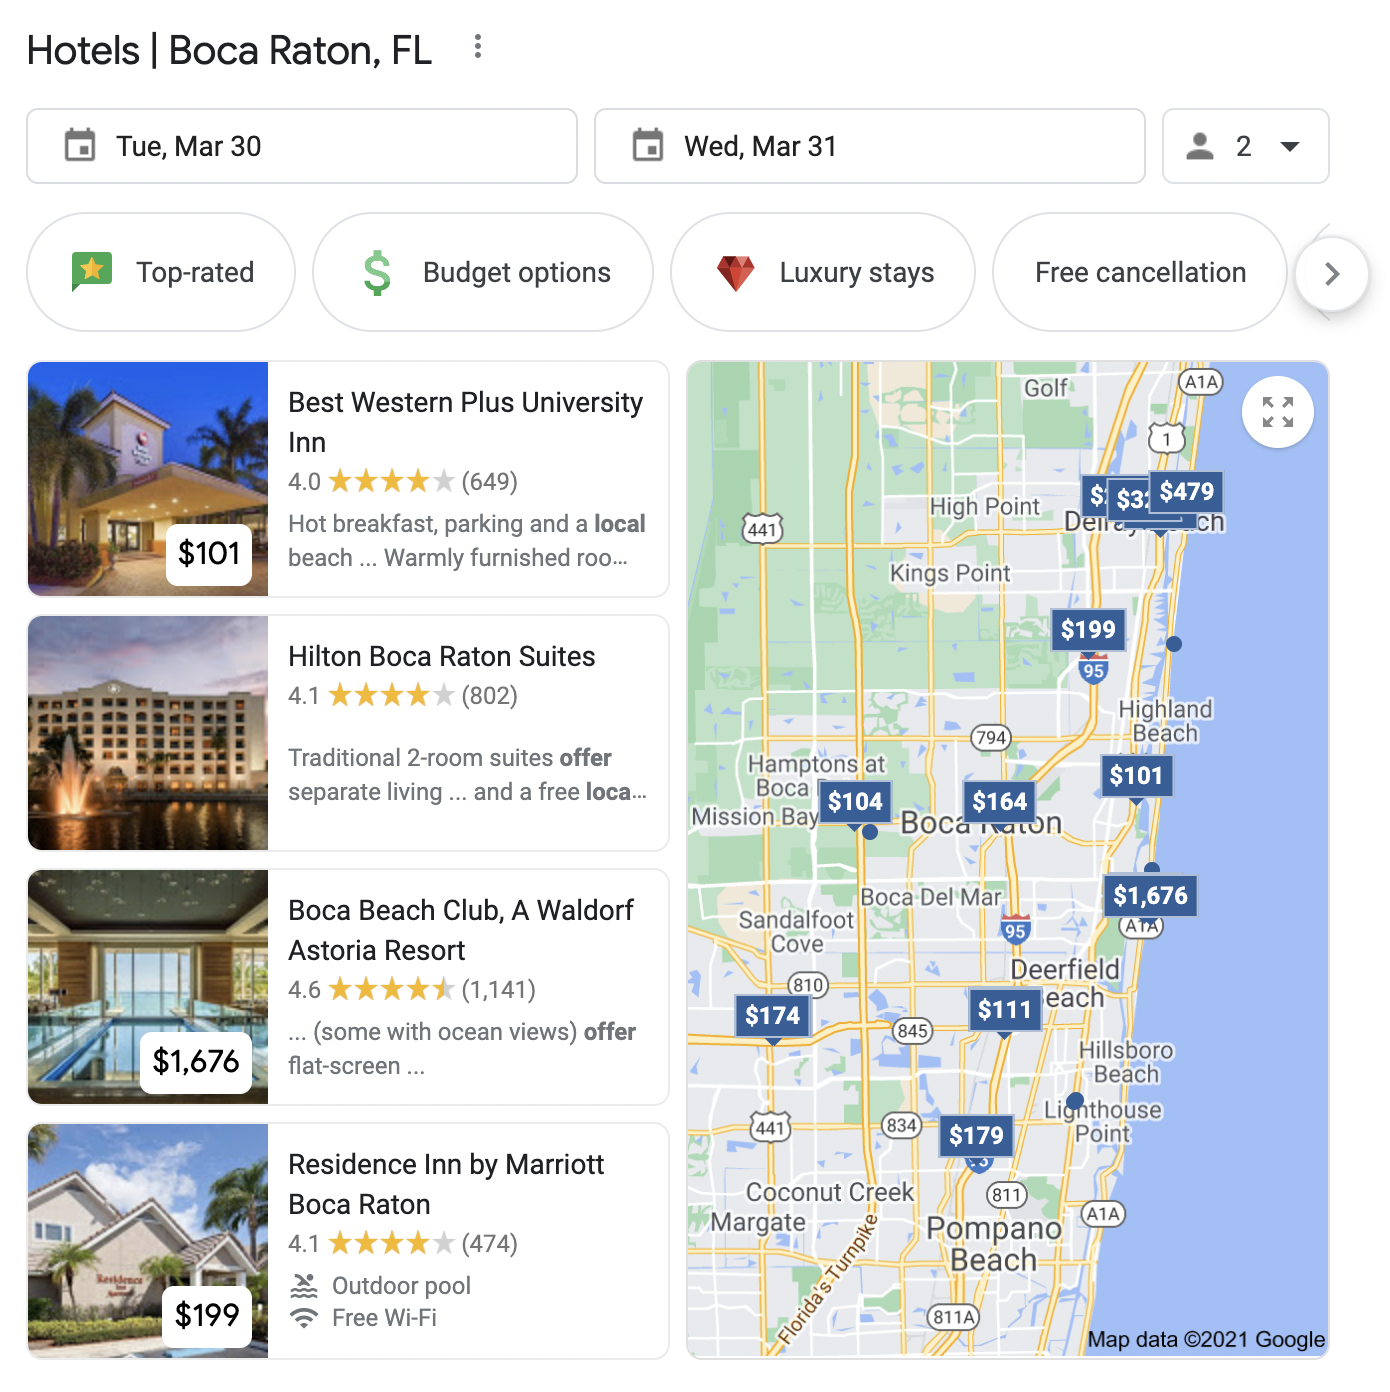 boca raton hotels on the google map